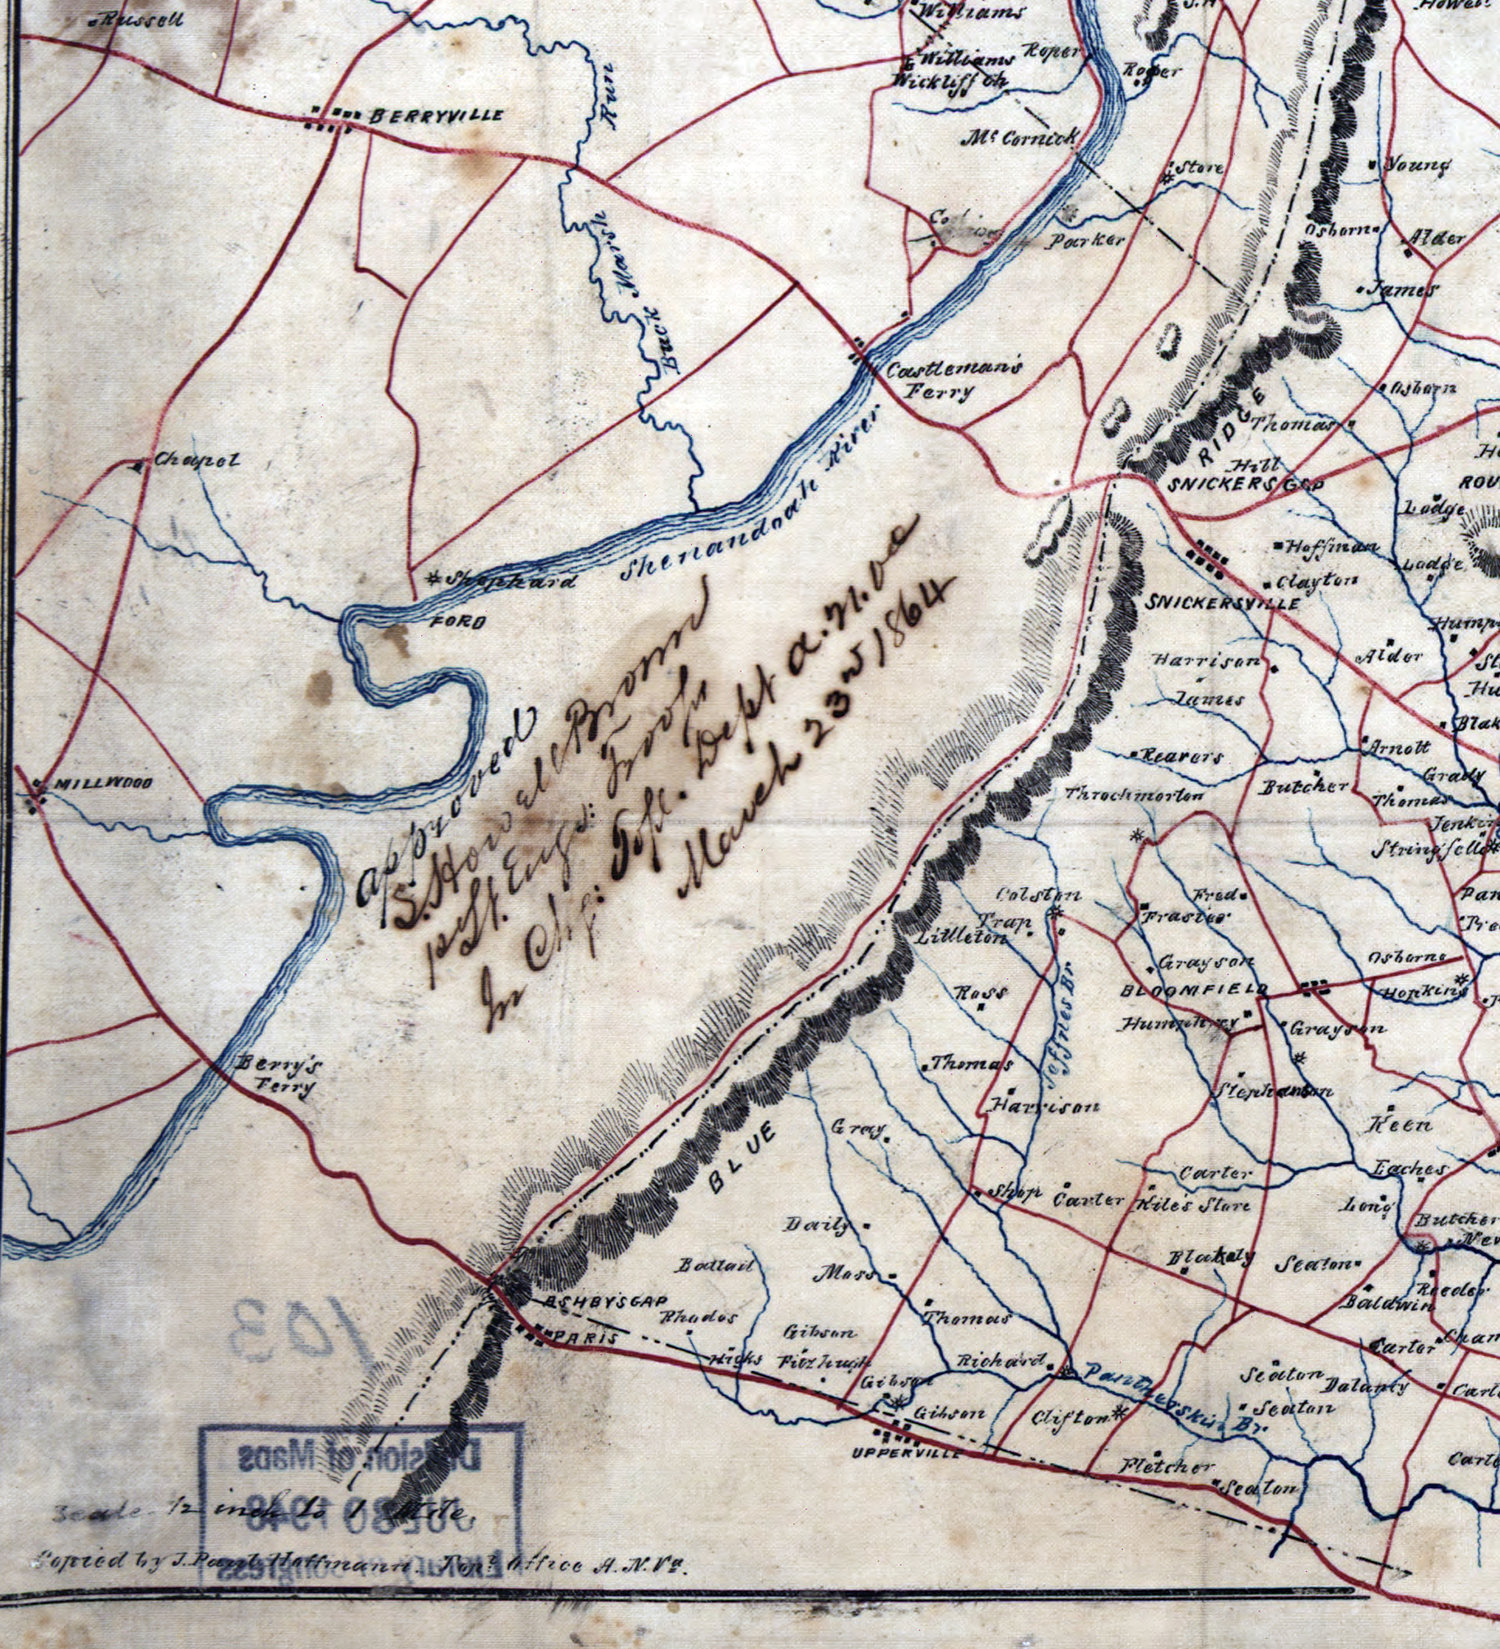 1864 Survey Map Showing Only Shephard's Mill